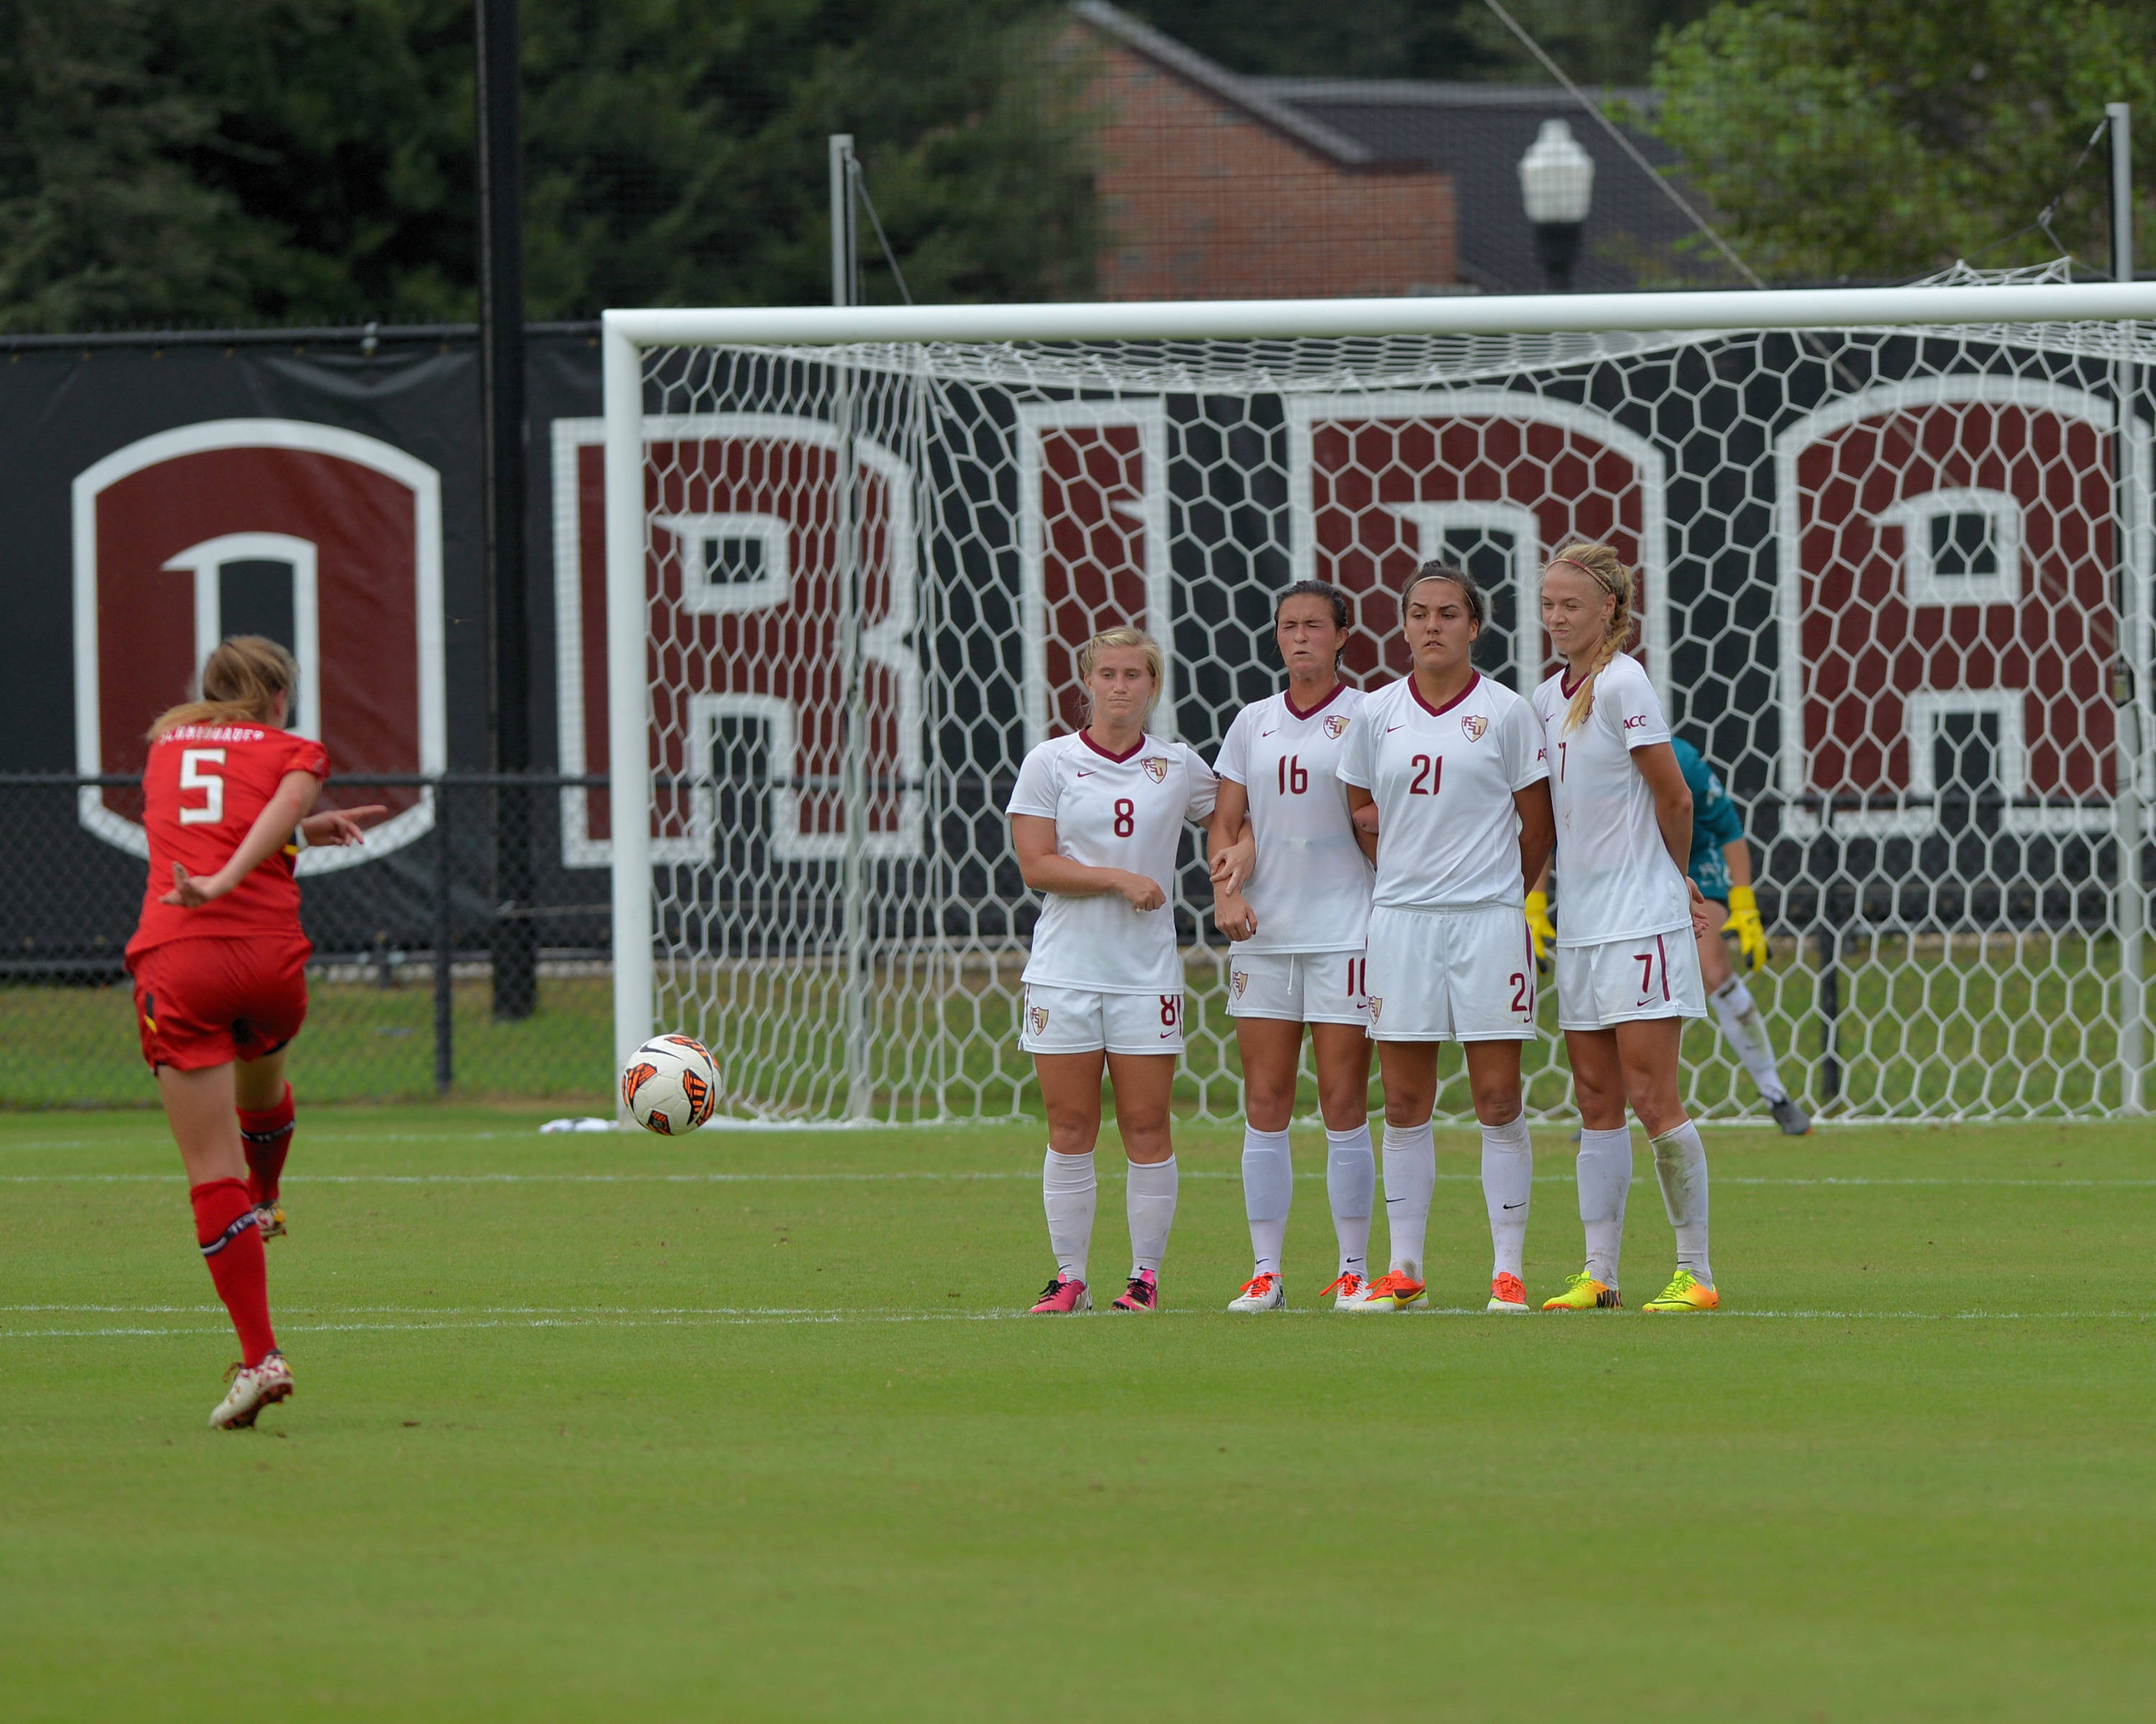 The Seminoles build a wall in front of the goal during a free kick chance by Maryland.